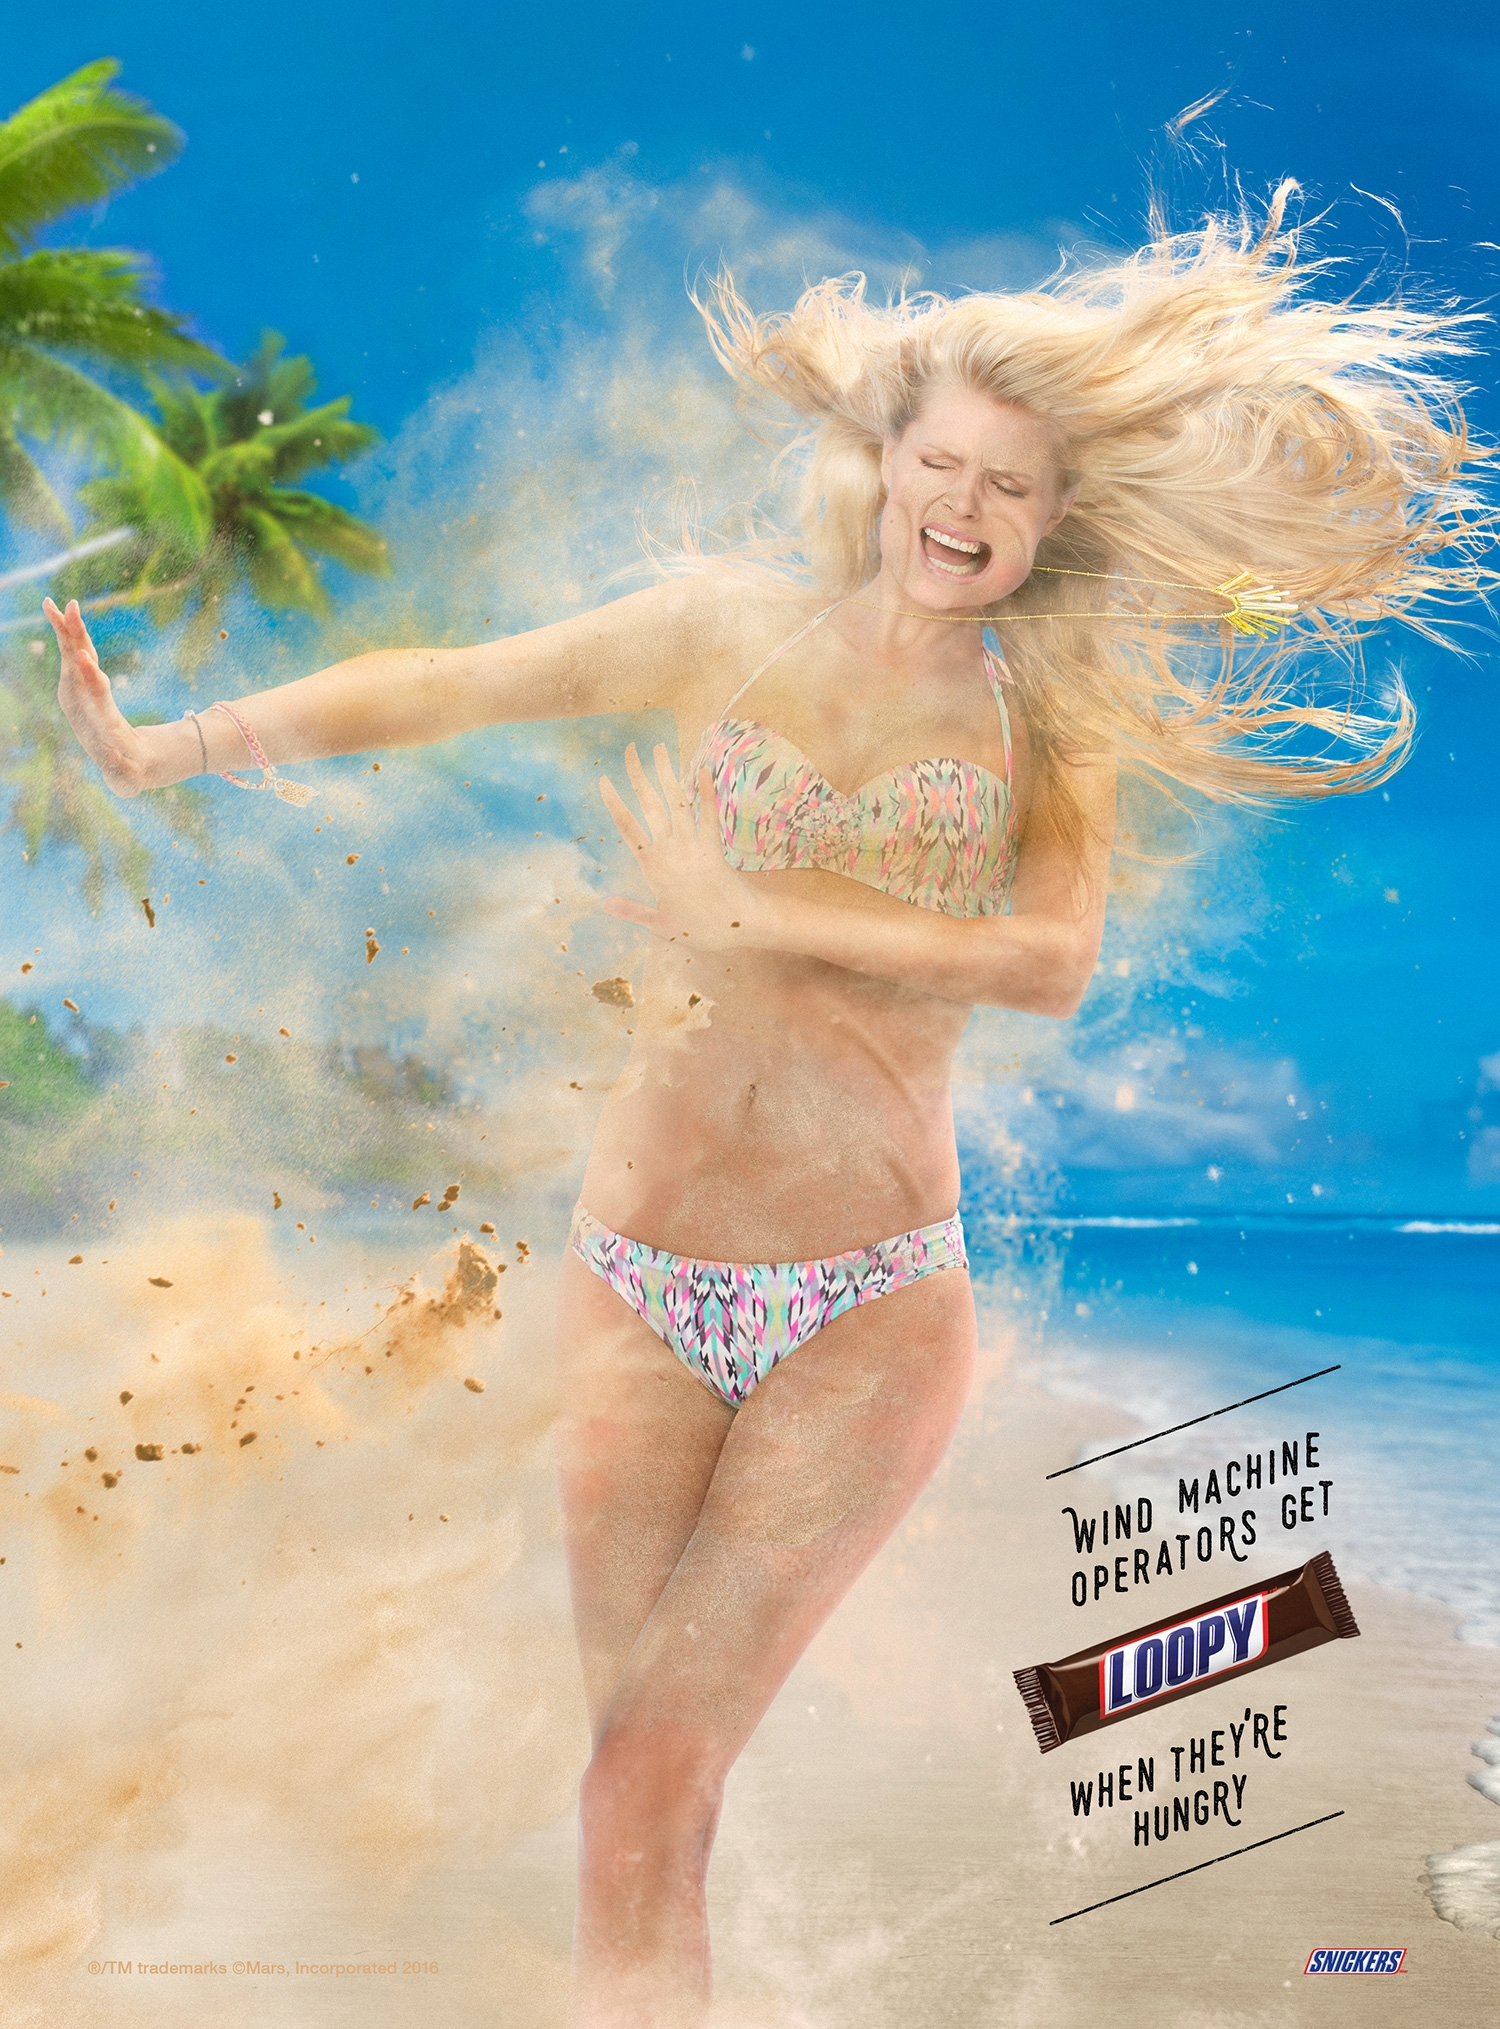 snickers-fail-pub-photoshop-2